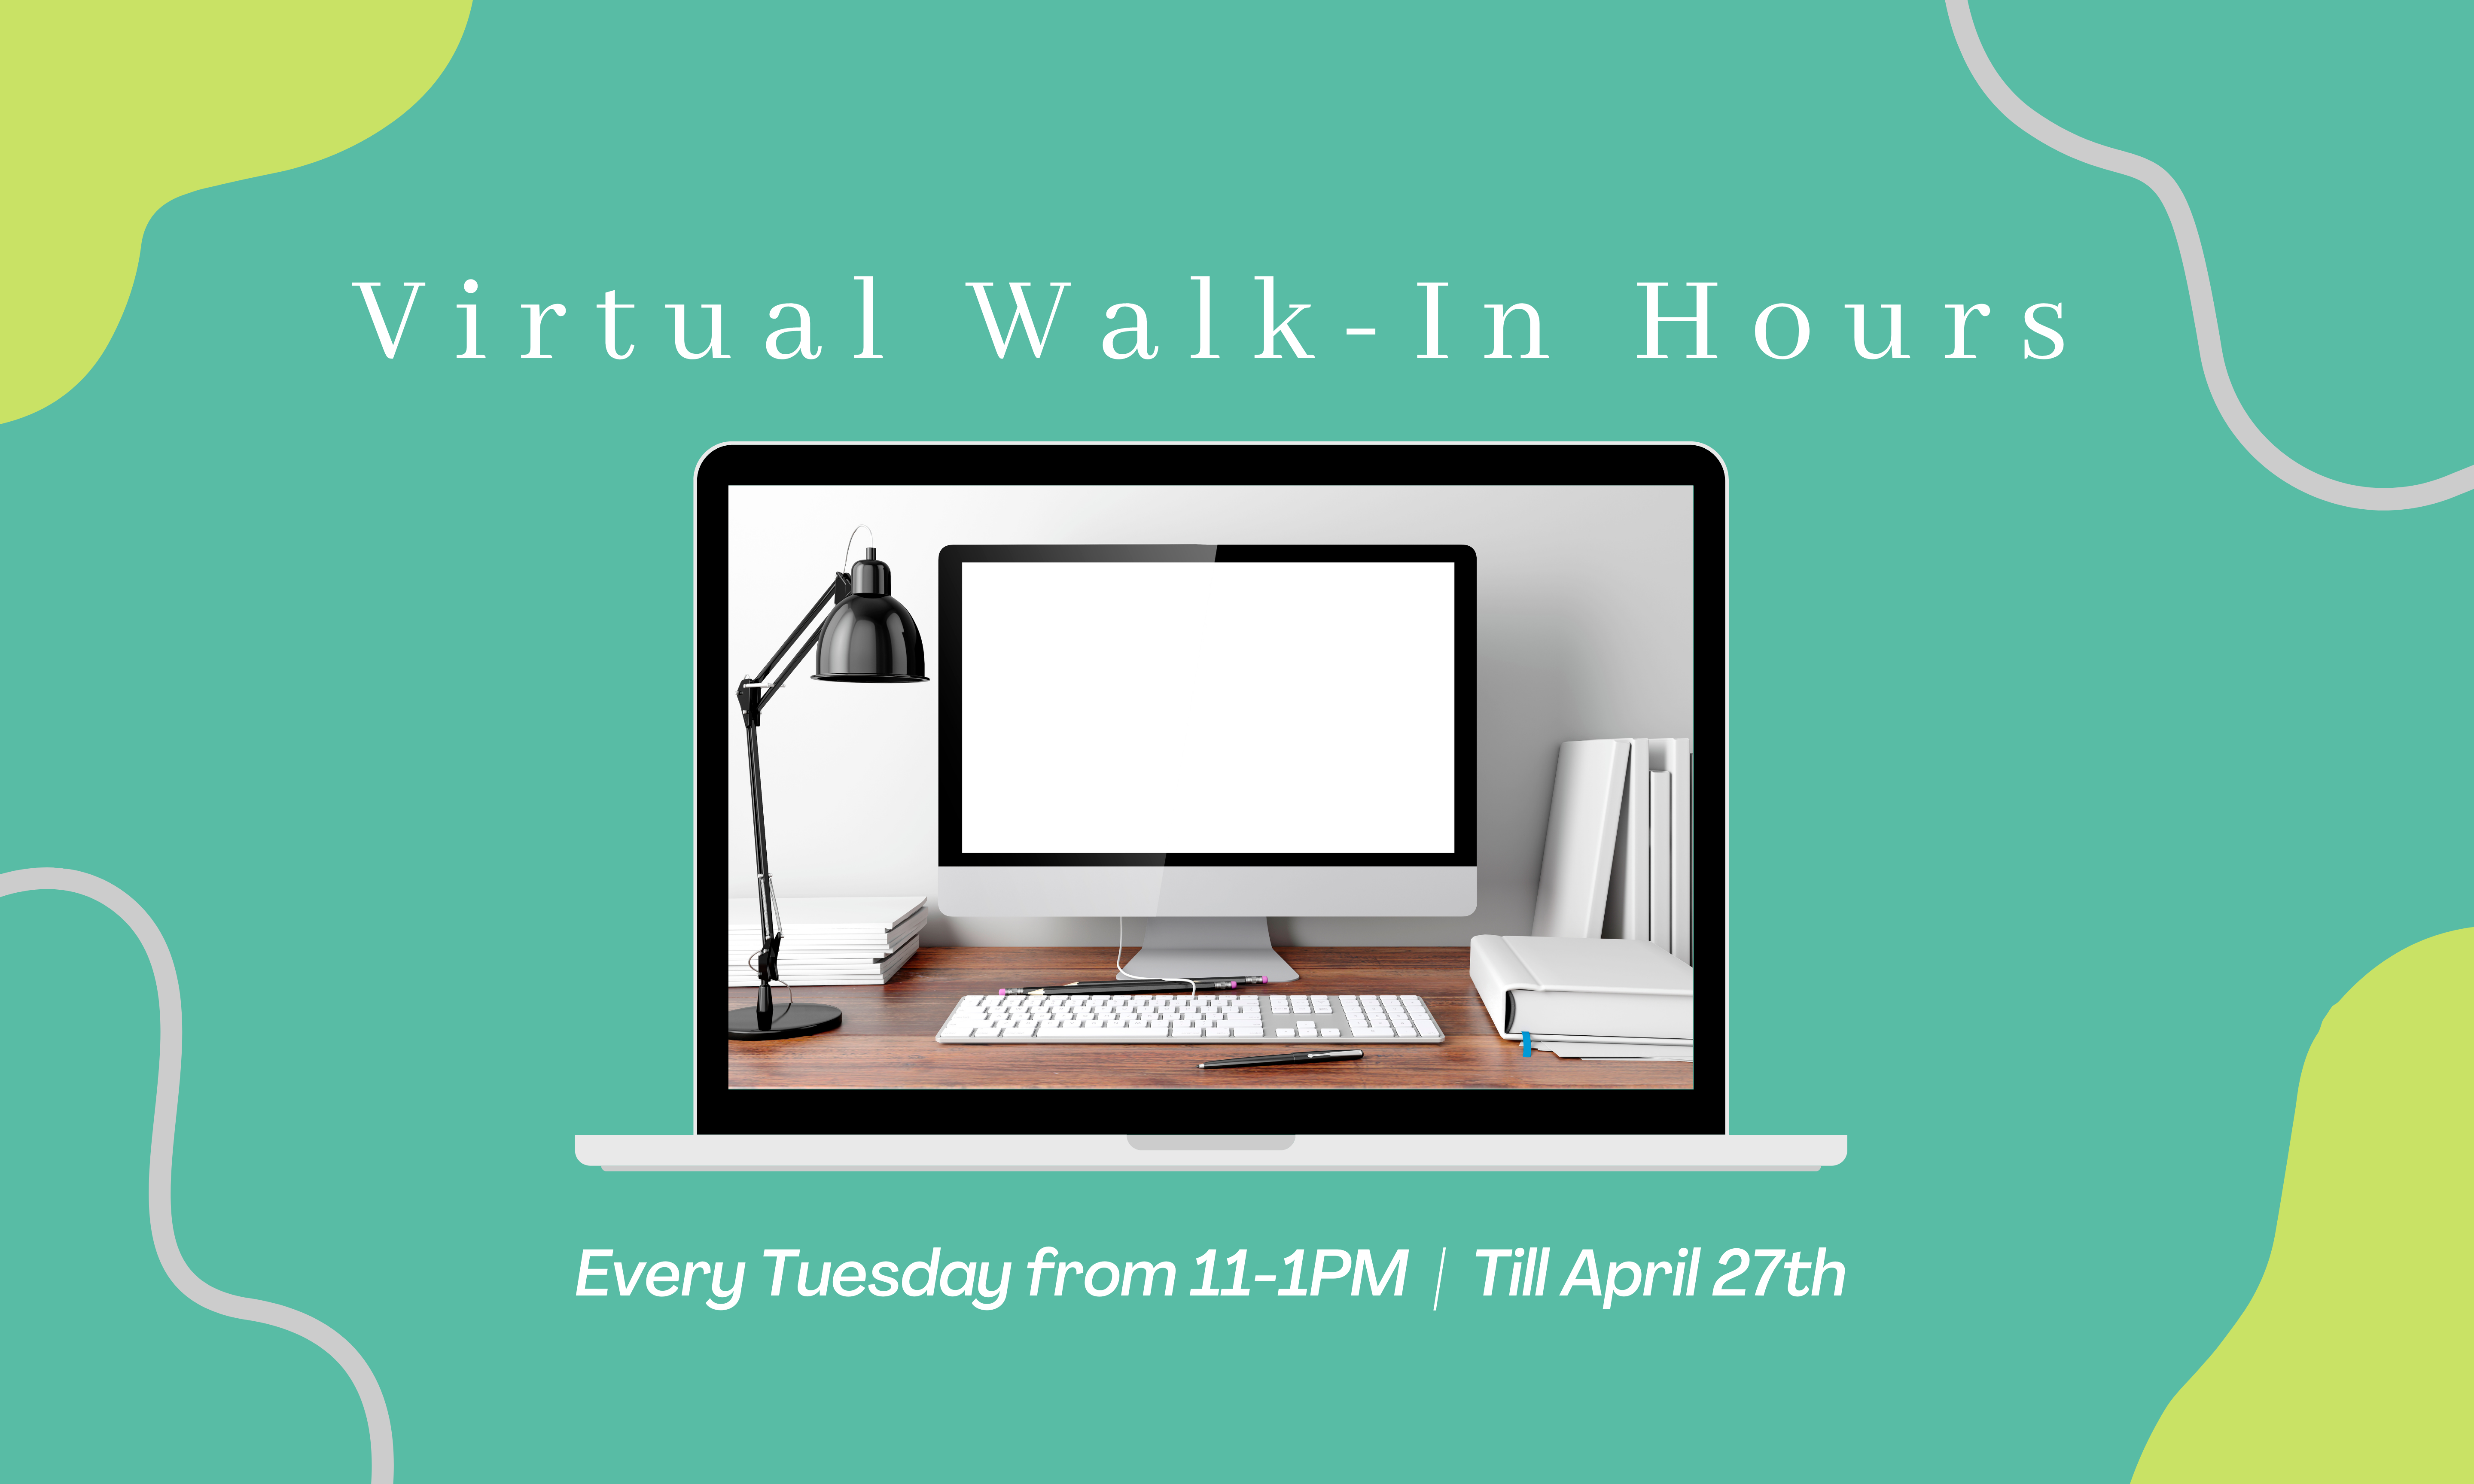 Virtual Walk-In Hours